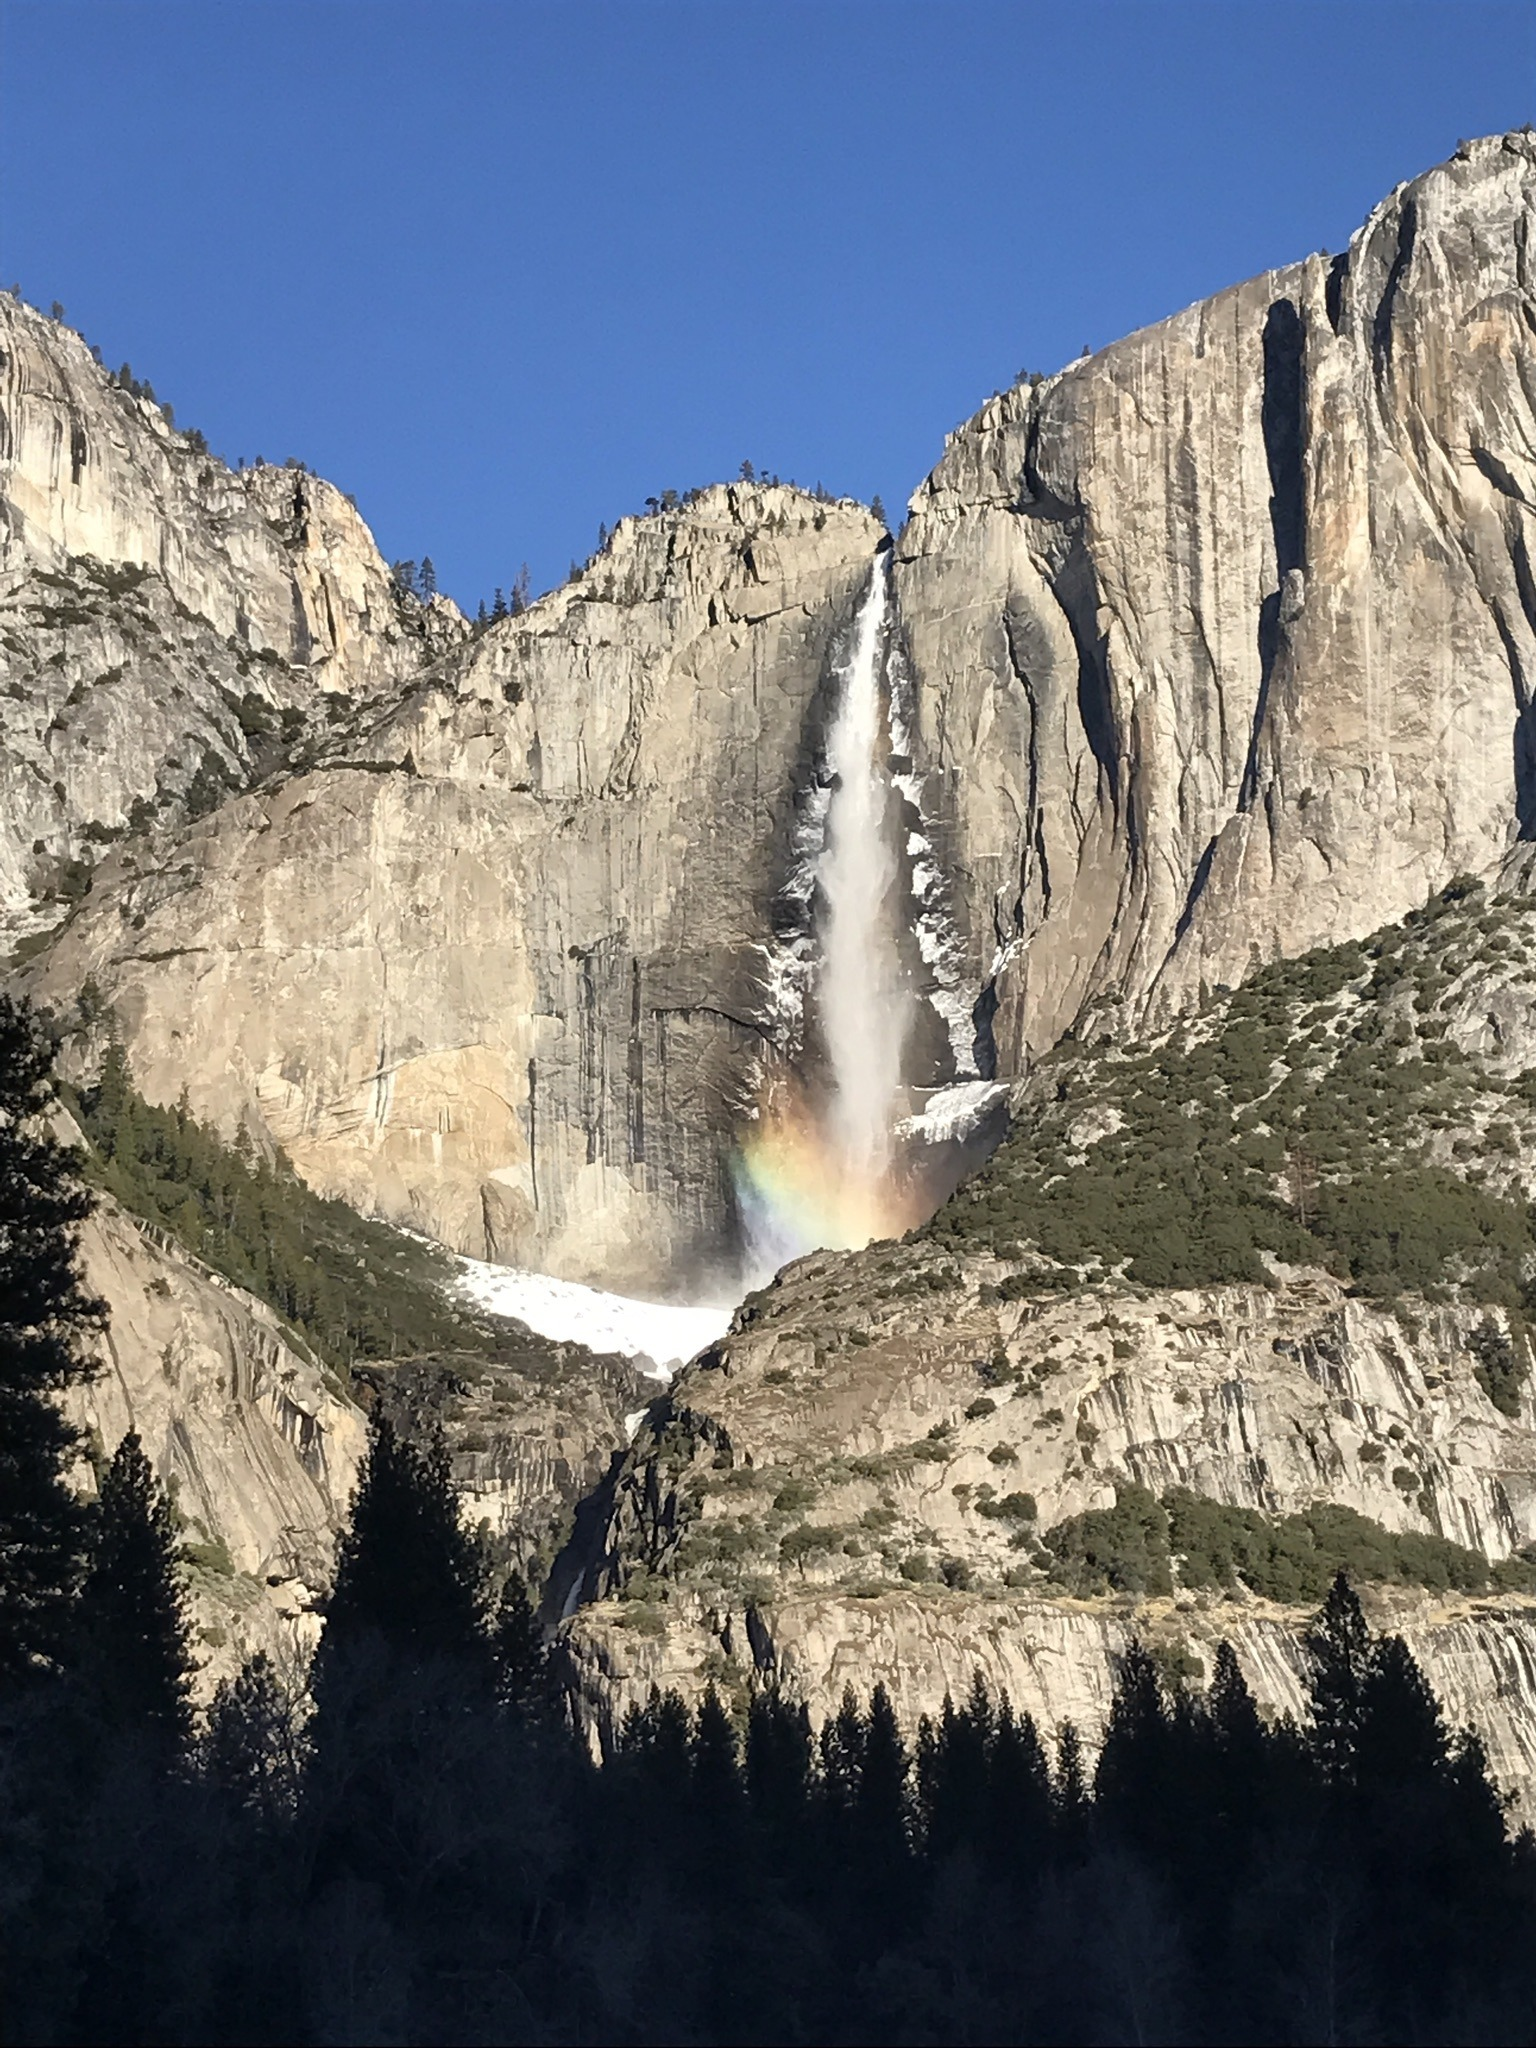 A beauty shot of Yosemite Falls, with a rainbow visible in the mist and snow piled up at the base of the upper fall. Photo: Melissa King.